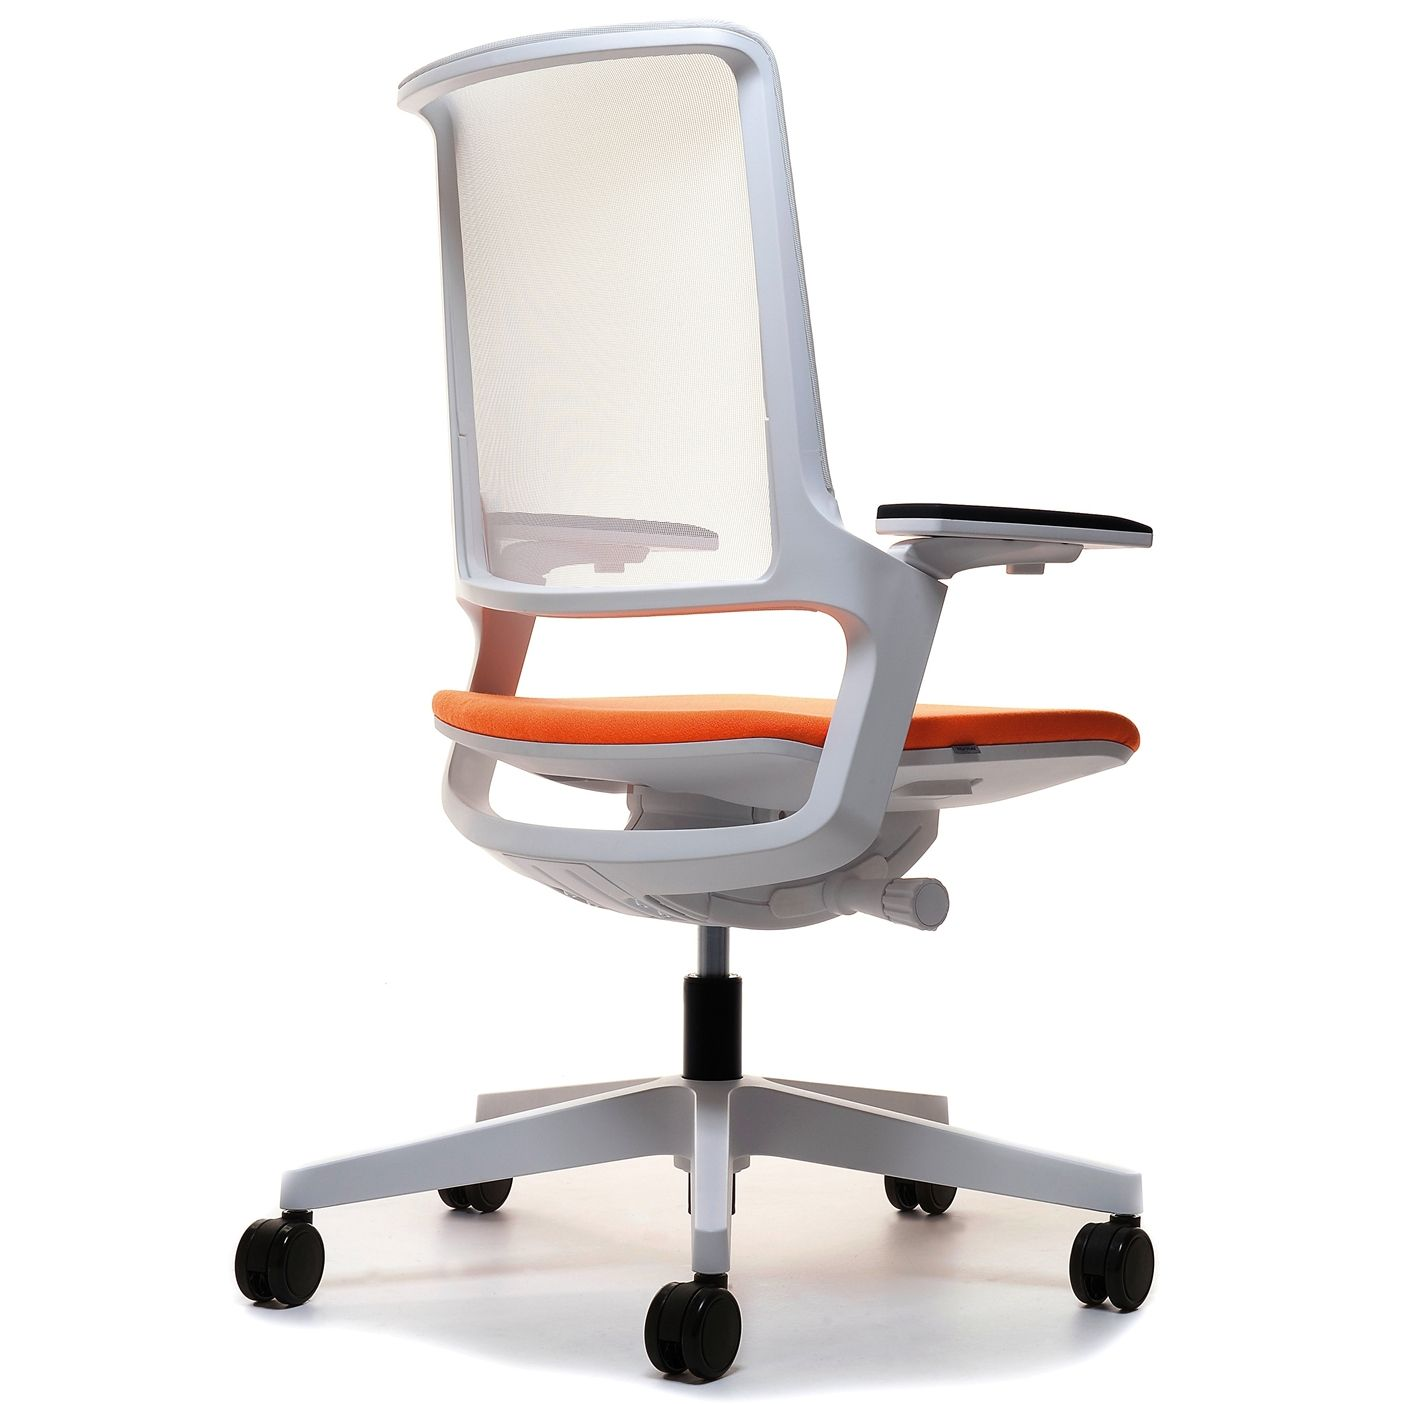 Interstuhl Movy Is3 14M2 Mesh Chair (With Images